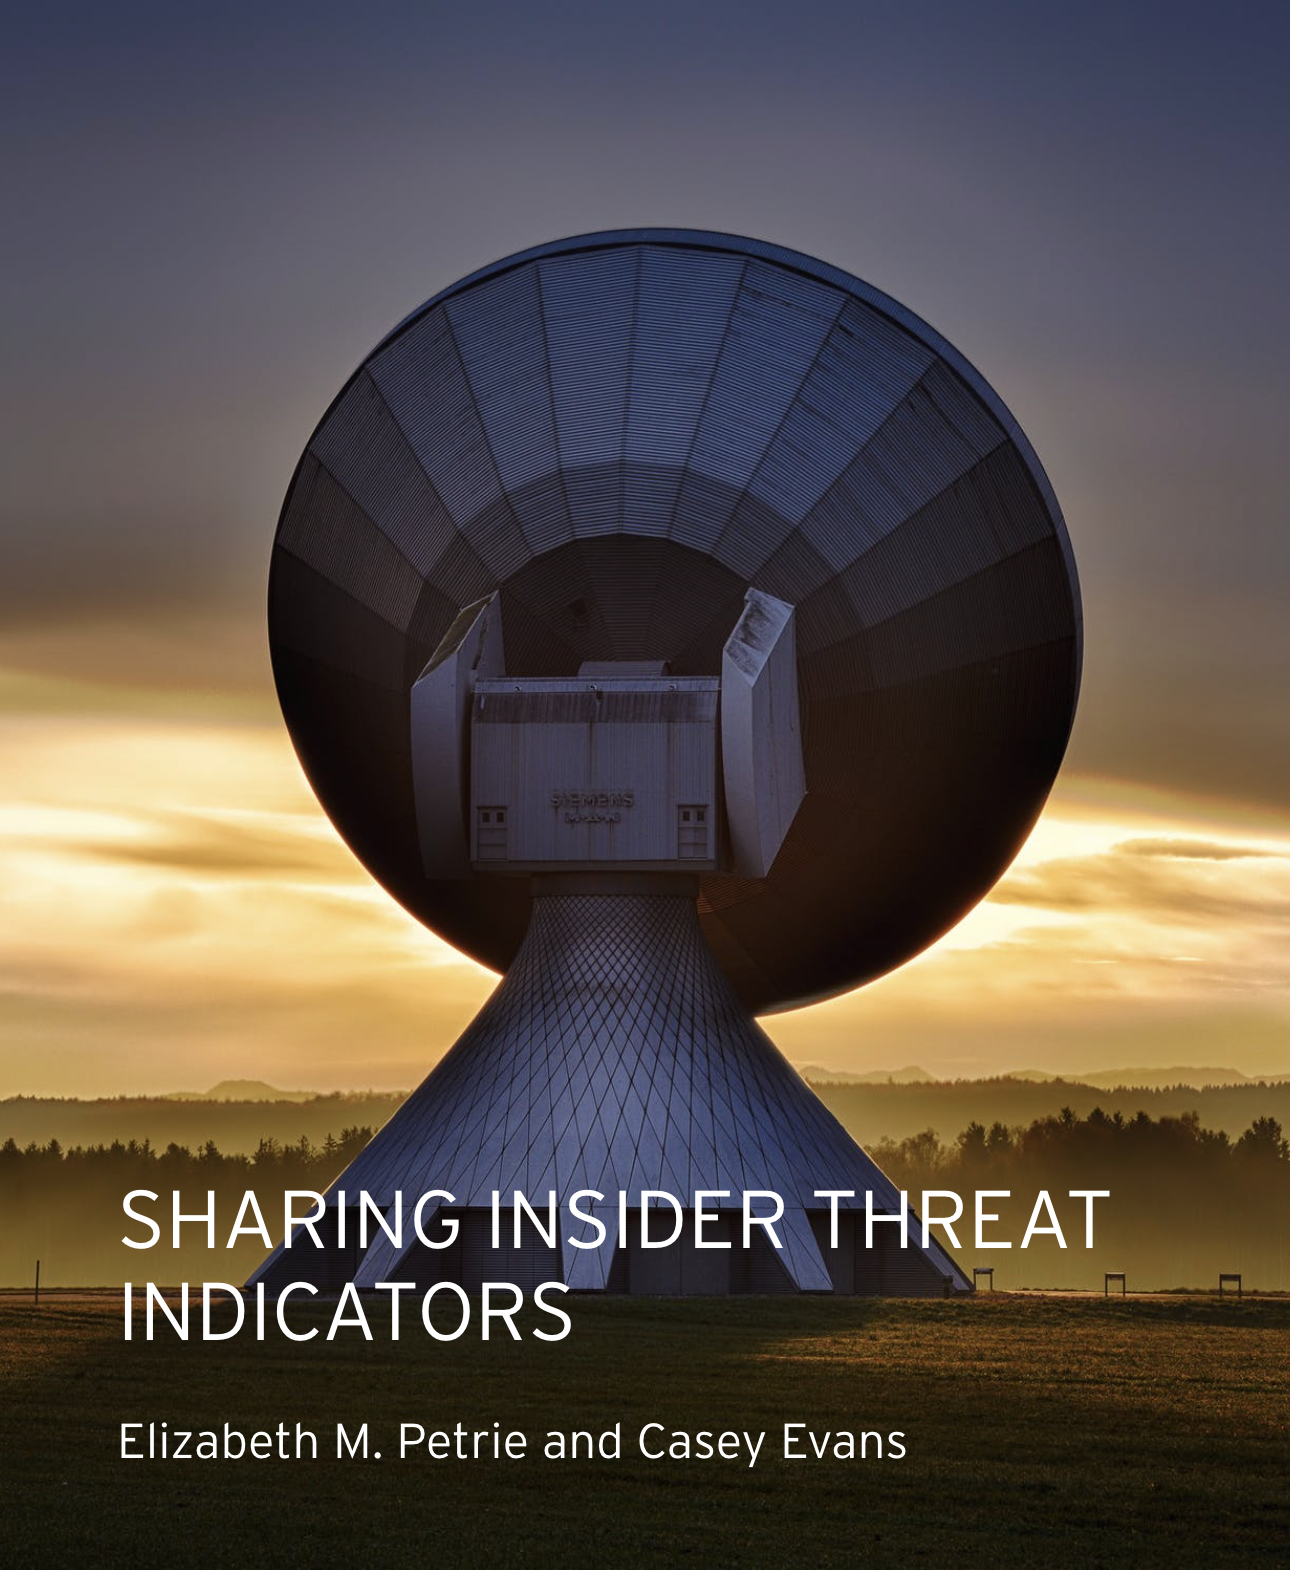 SHARING INSIDER THREAT INDICATORS, by Elizabeth M. Petrie and Casey Evans